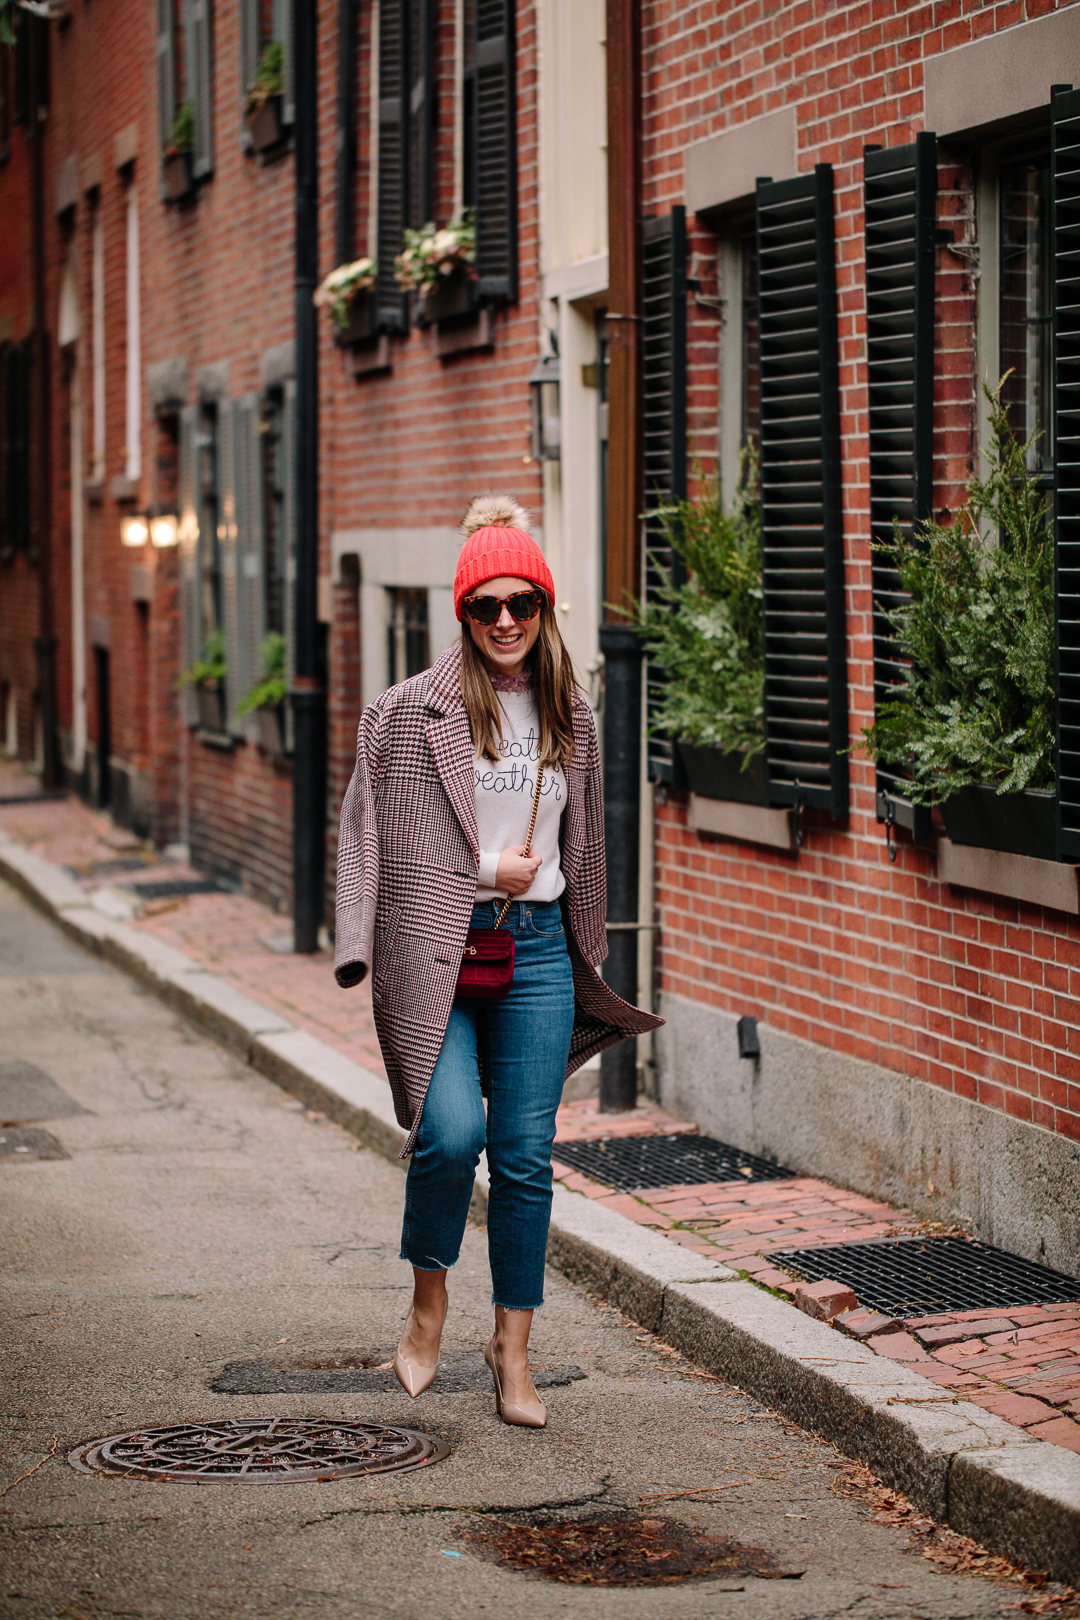 Boston blogger Kerrie M Burke shares two holiday looks featuring the same plaid coat